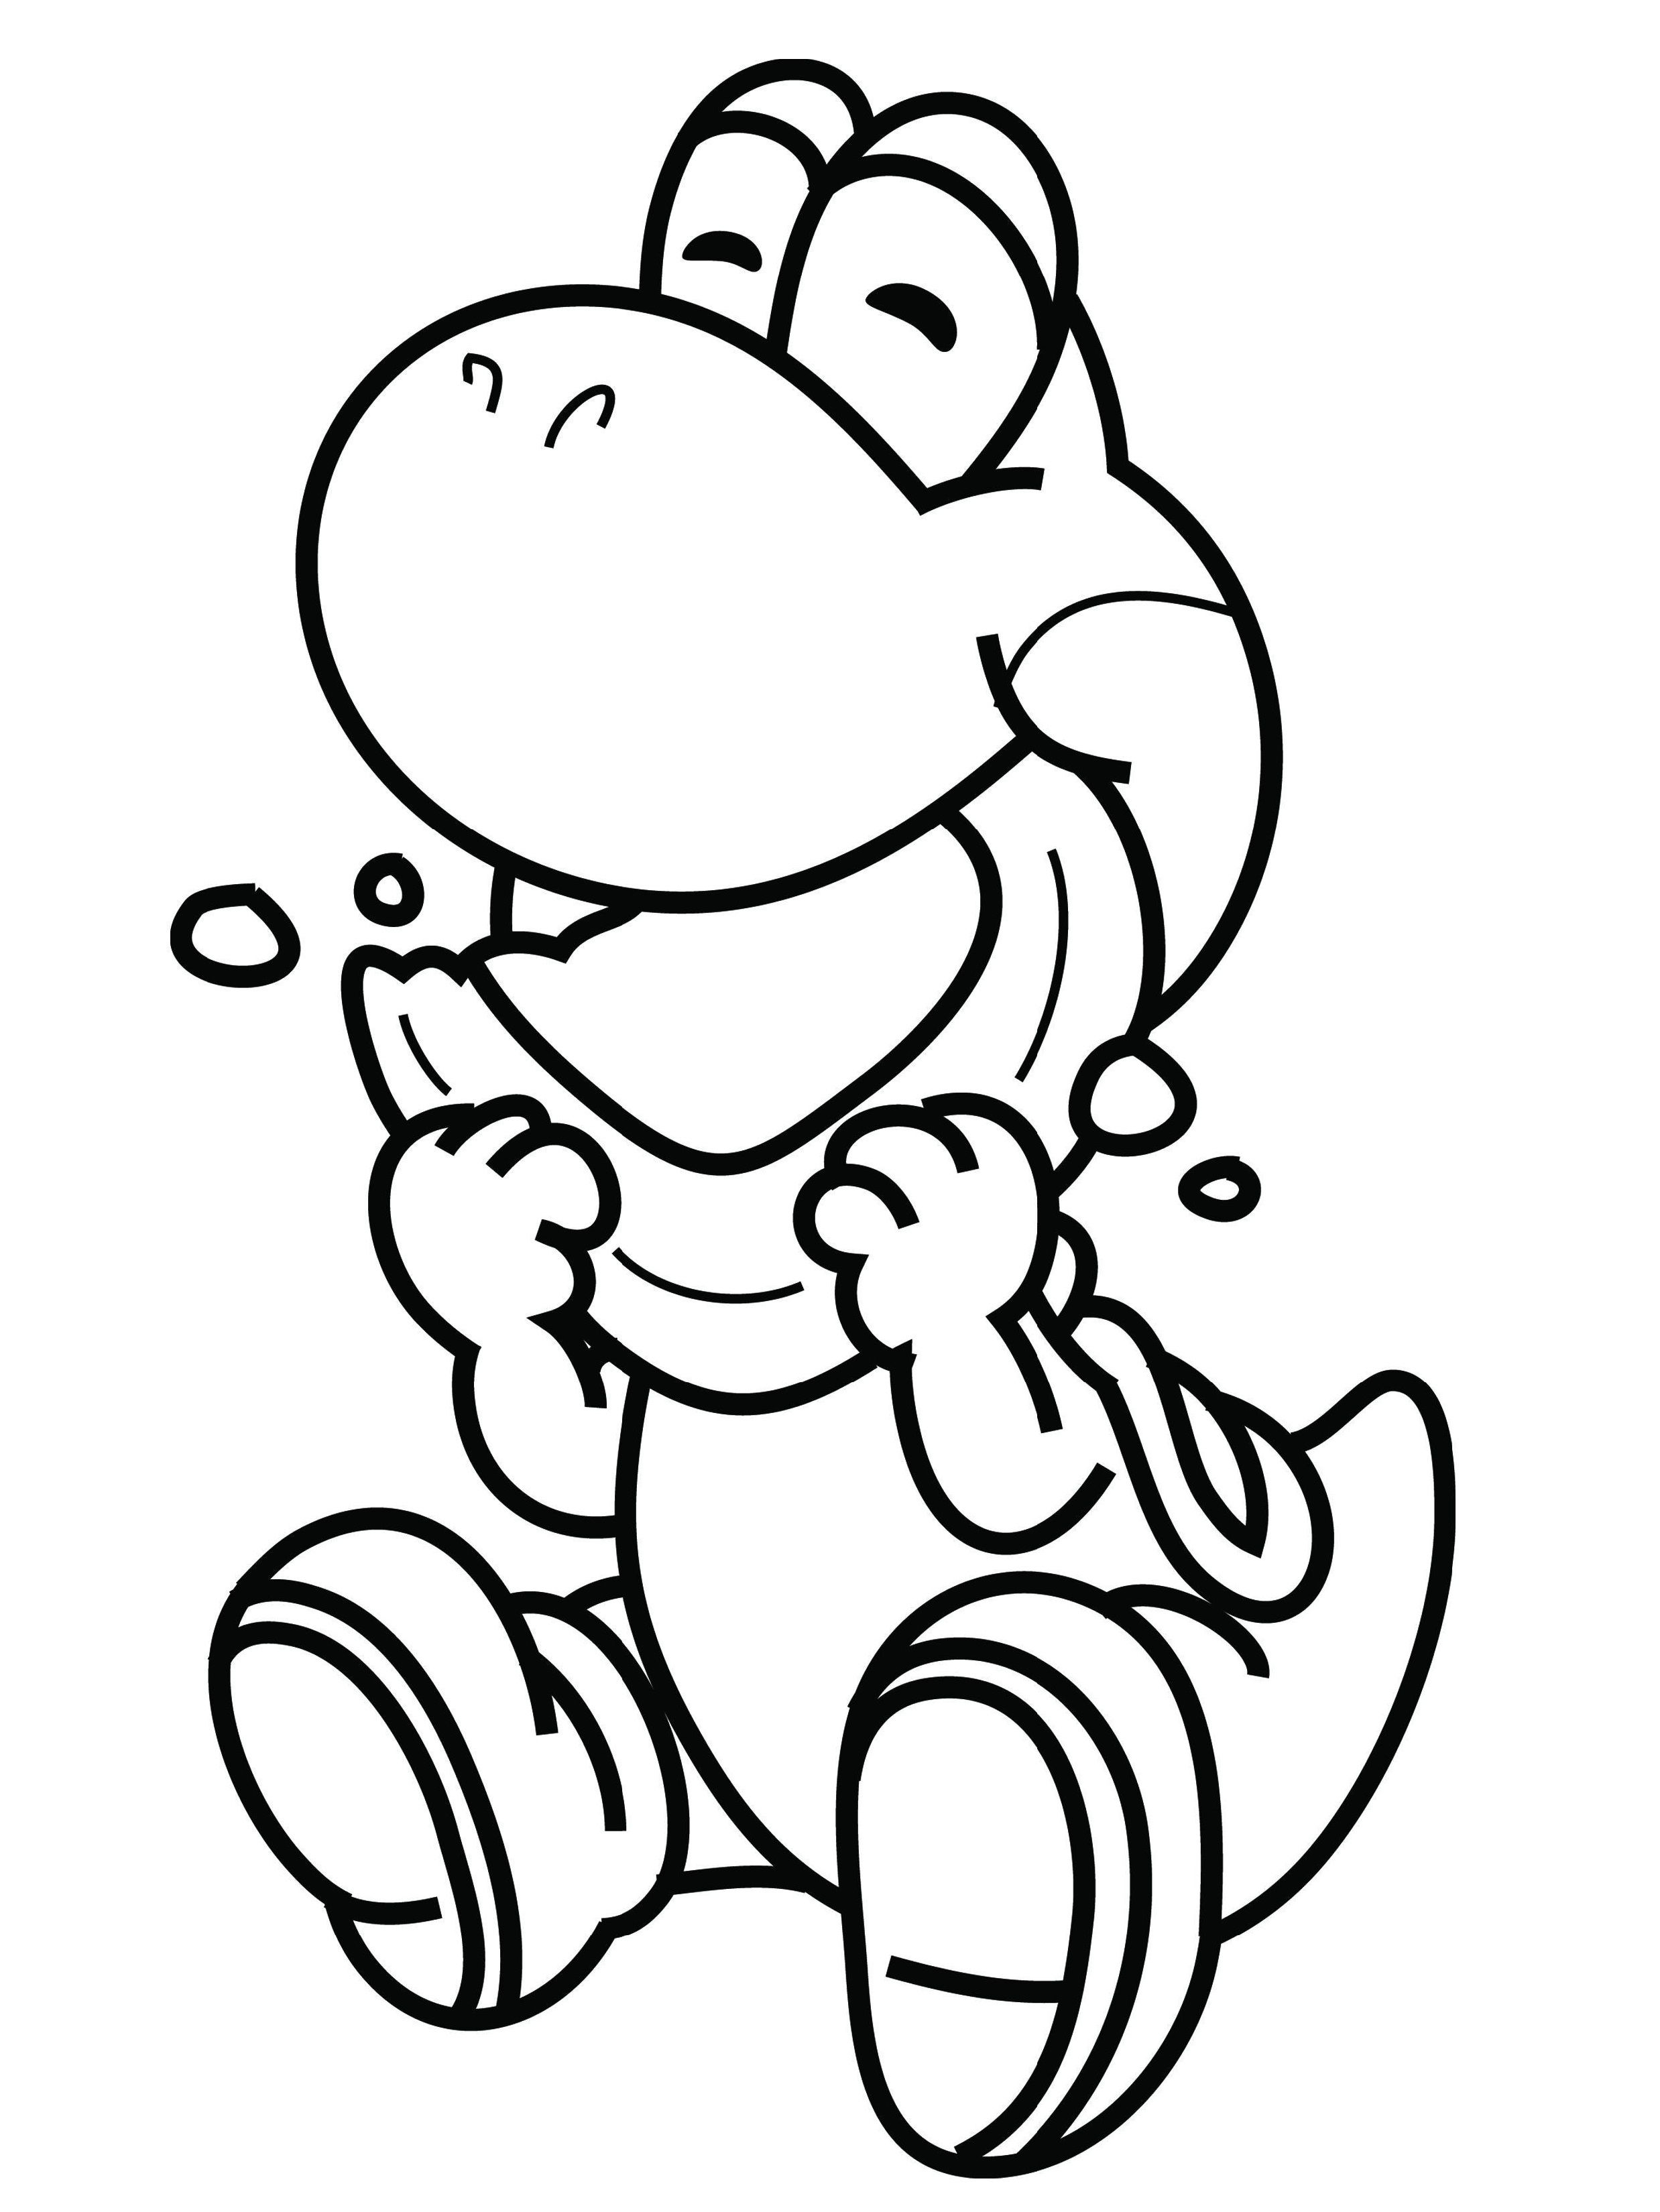 Cute Yoshi Dragon Coloring Pages Super Mario Bross Educative Printable Coloring Pages Super Mario Coloring Pages Yoshi Drawing